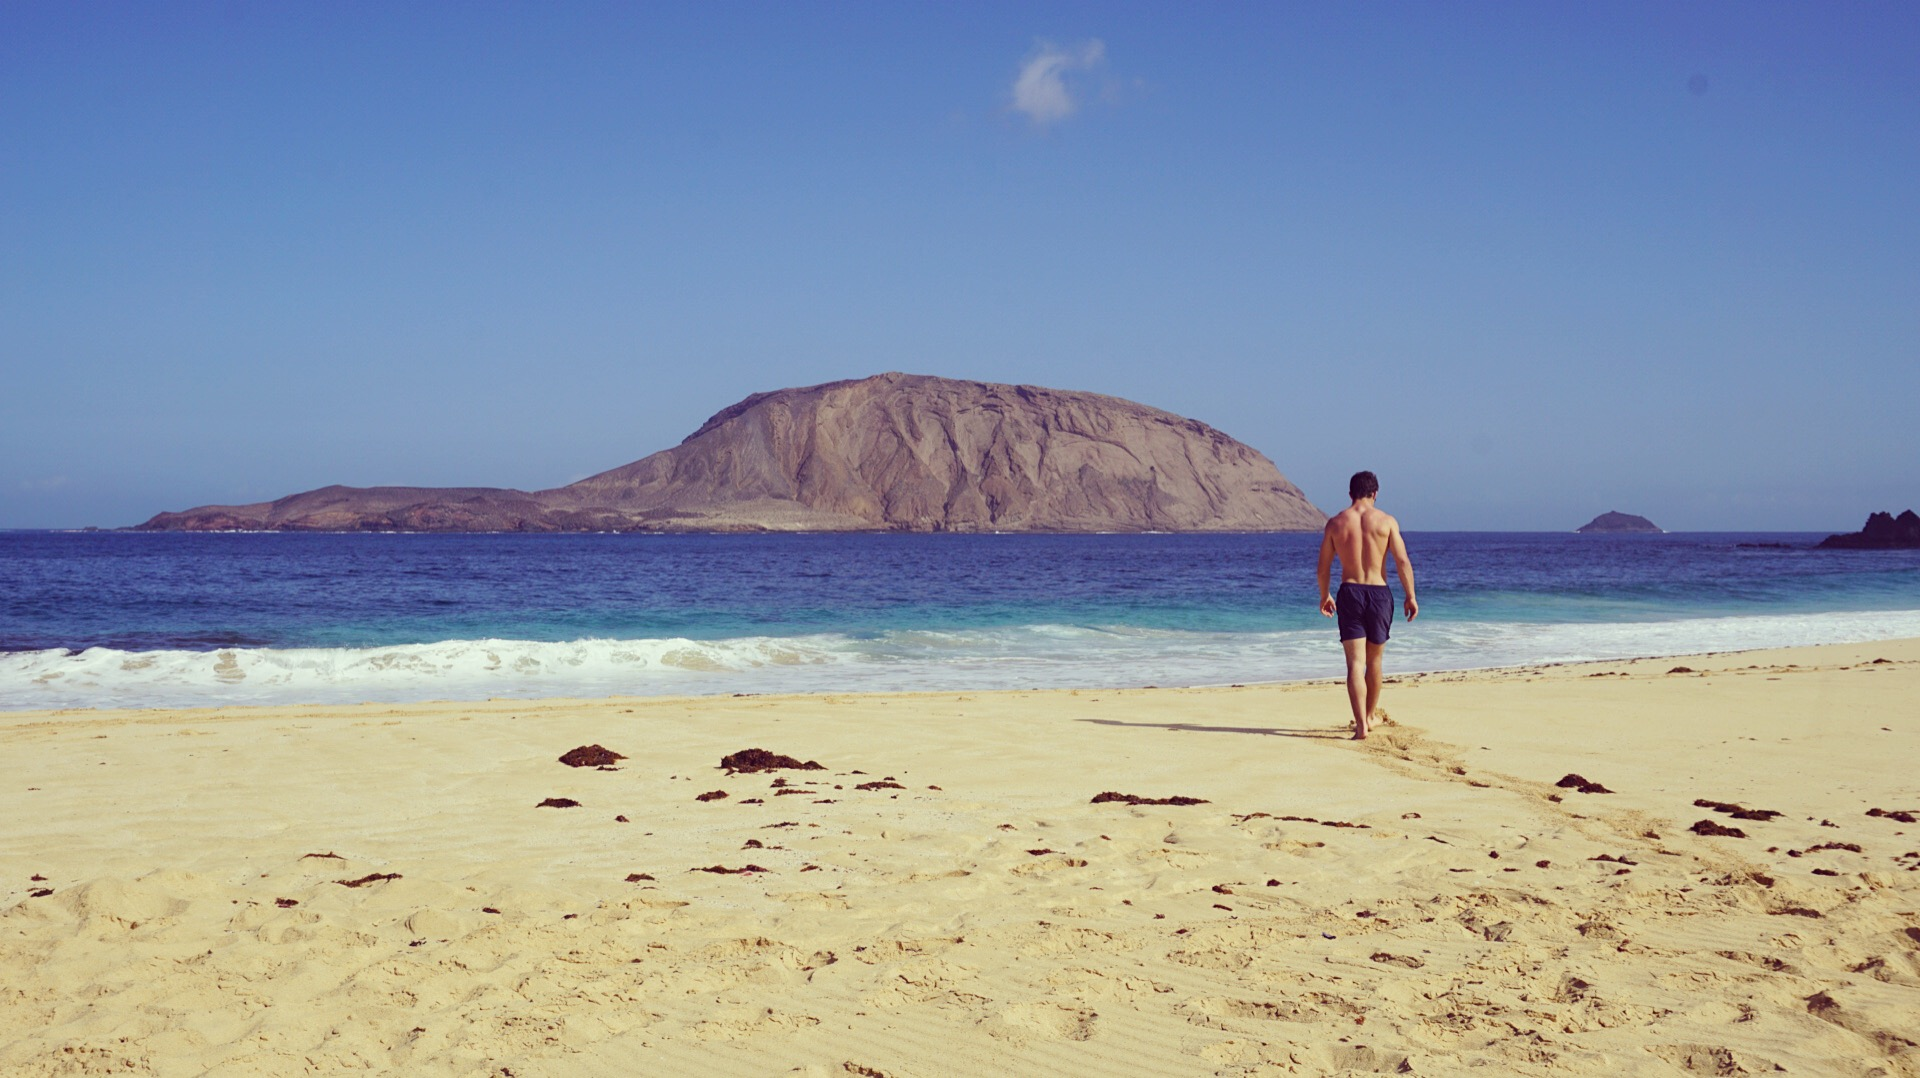 Canary Islands Beaches - Playa de las Conchas